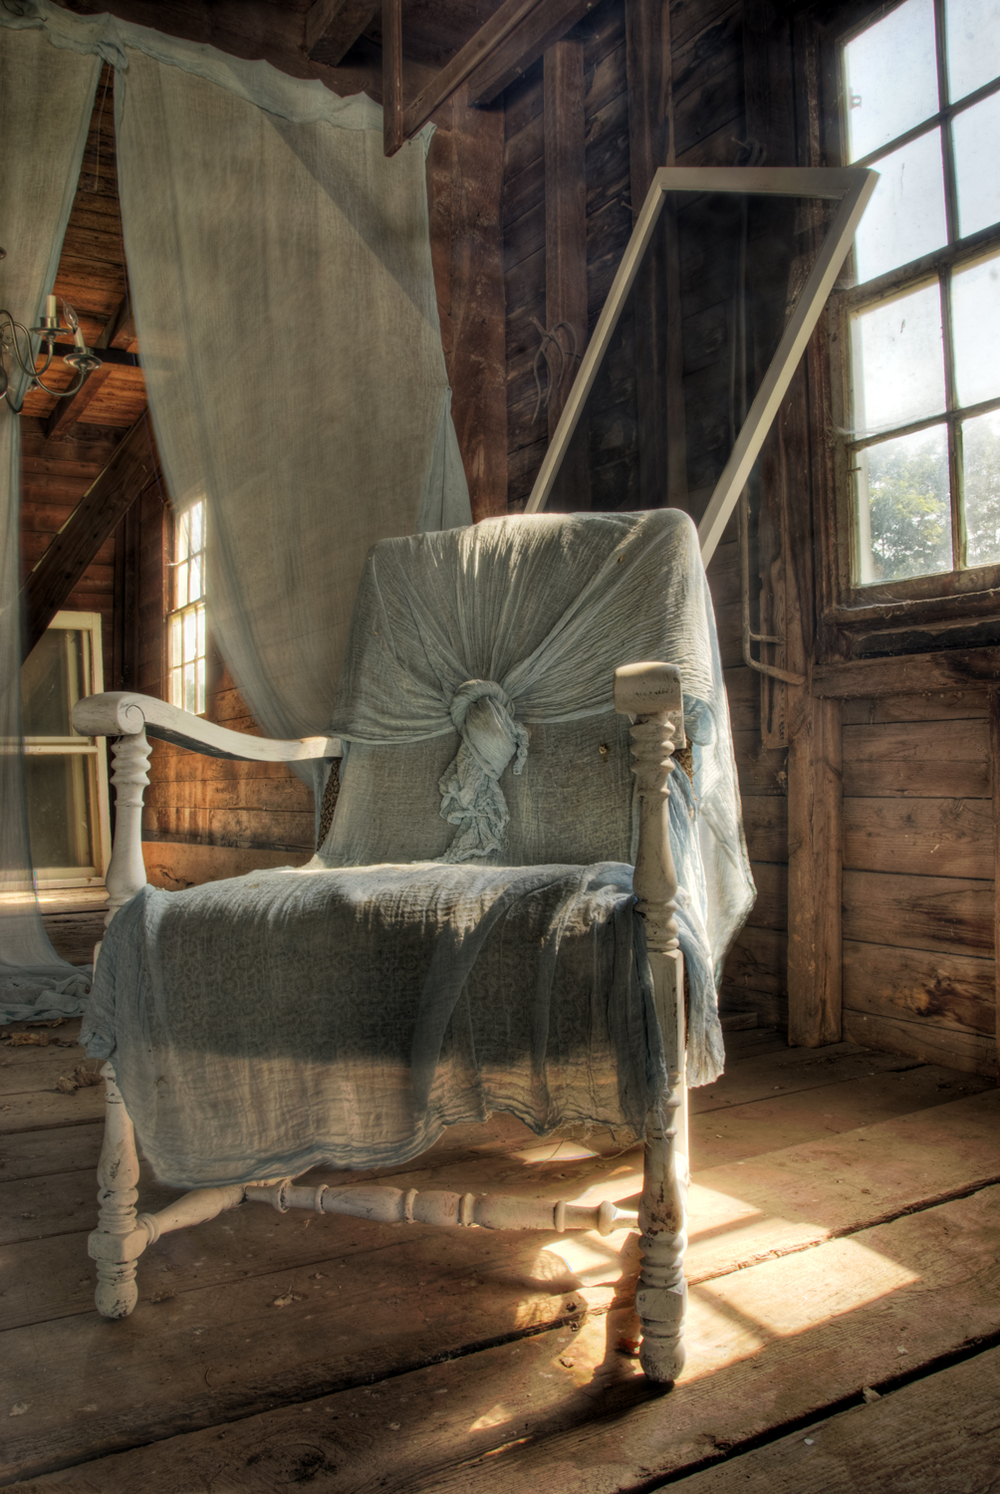 Barn, Chair, Window